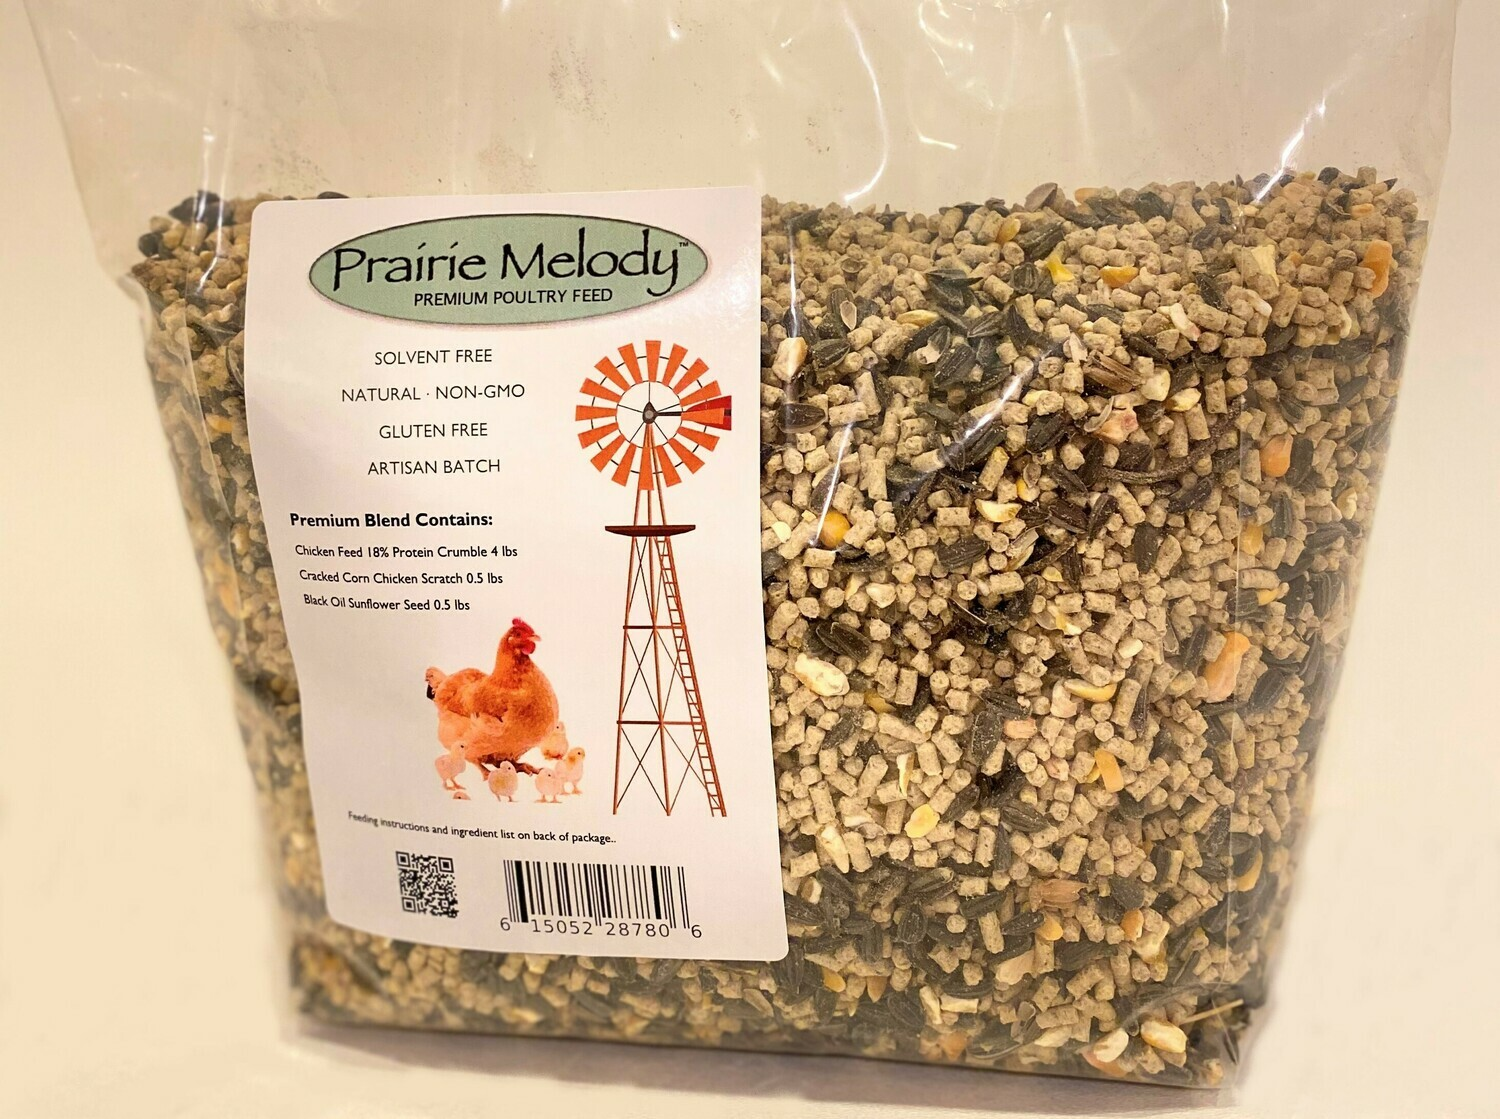 ** FREE SHIPPING ** Premium Blend Prairie Melody Poultry High Energy Feed - Feed+Scratch+Sunflower - Gluten Free, NonGMO, Solvent Free - 5 lb